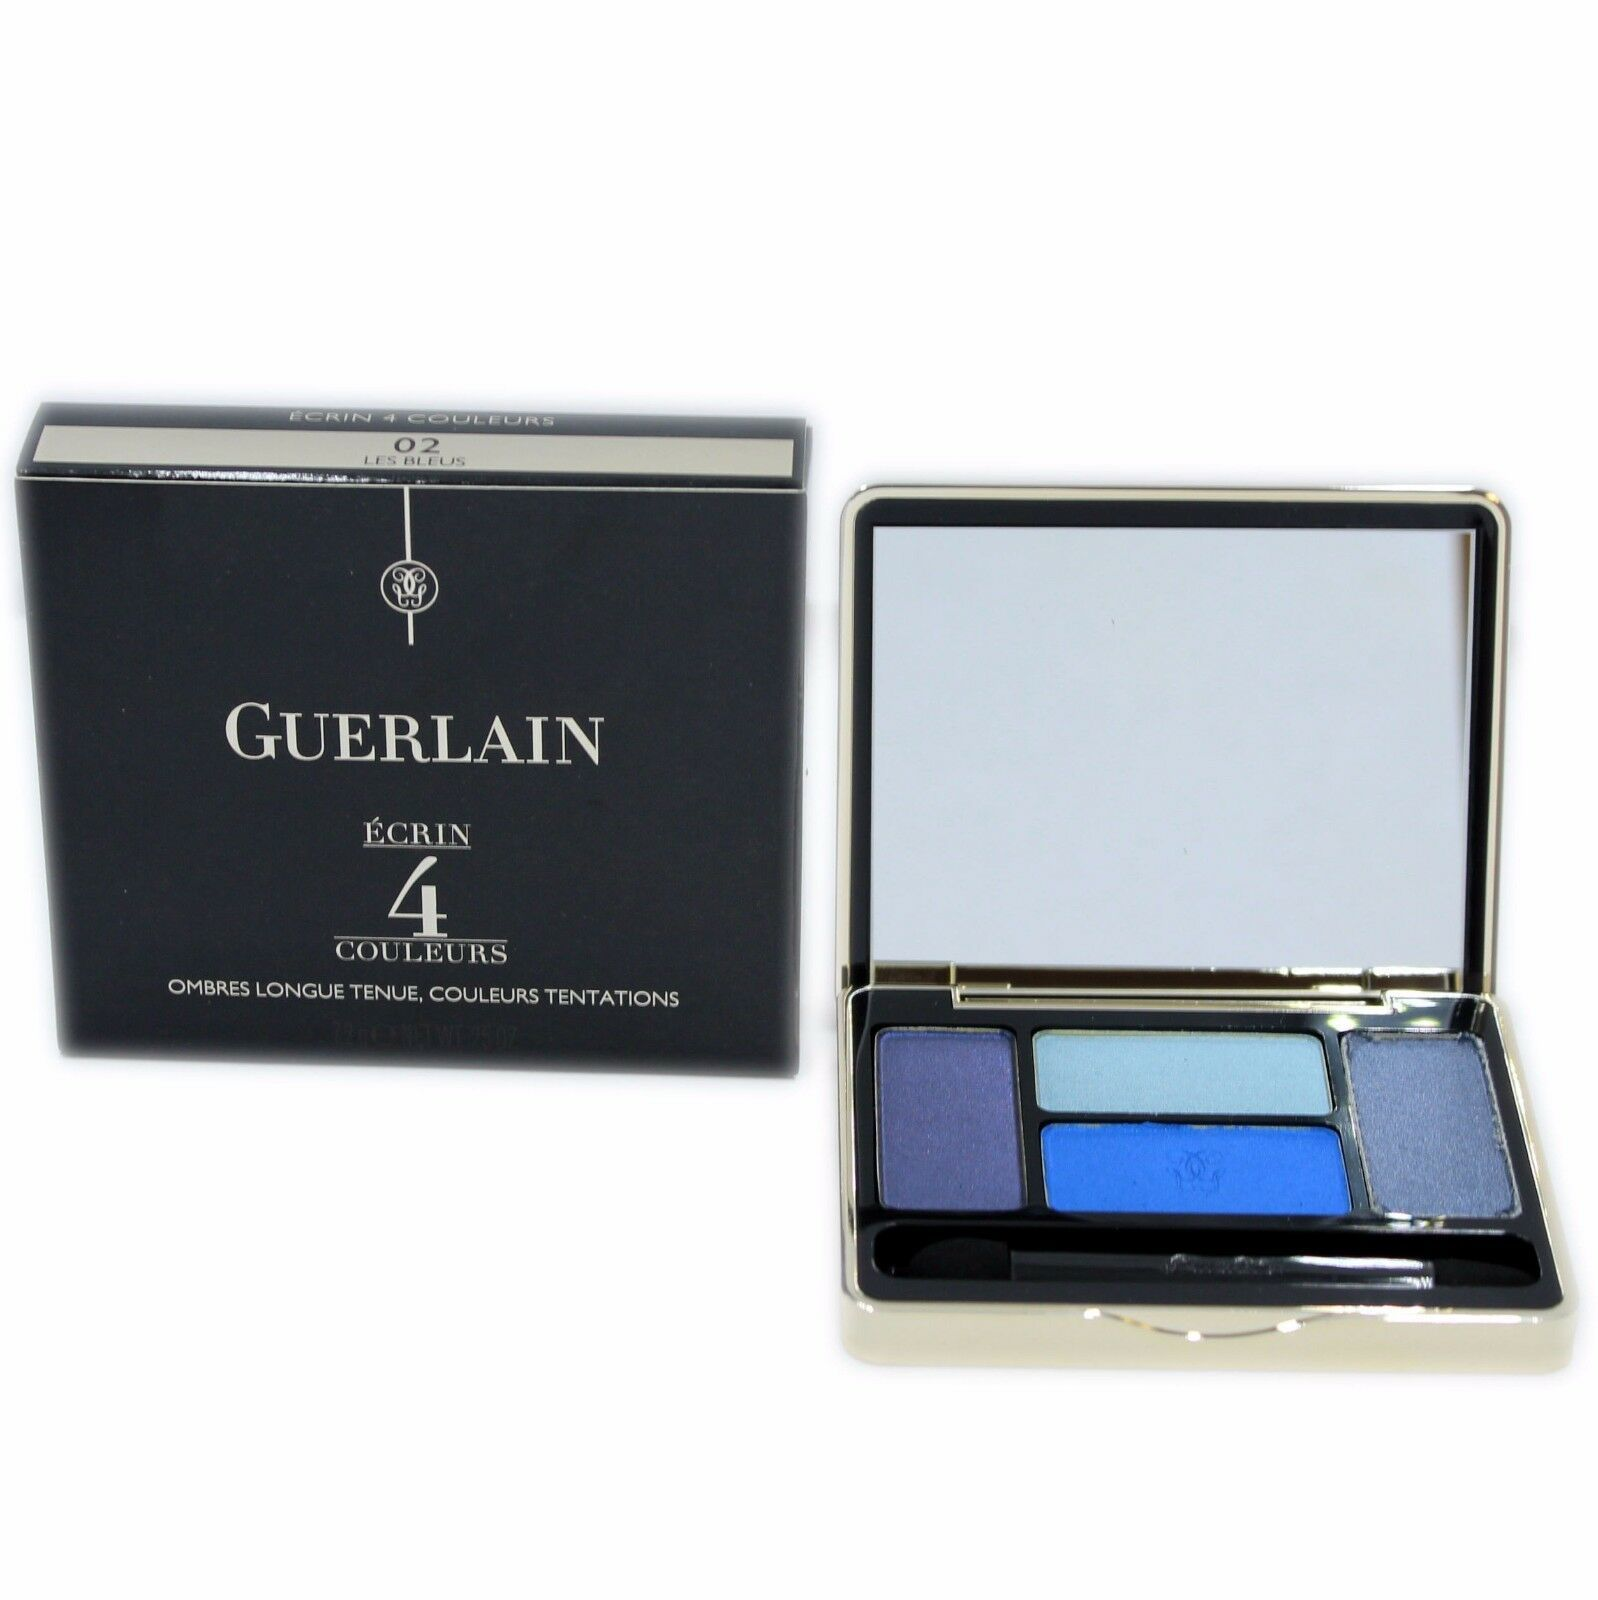 Primary image for GUERLAIN ECRIN 4 COULEURS LONG-LASTING EYESHADOWS 7.2G #02 LES BLEUS-41146